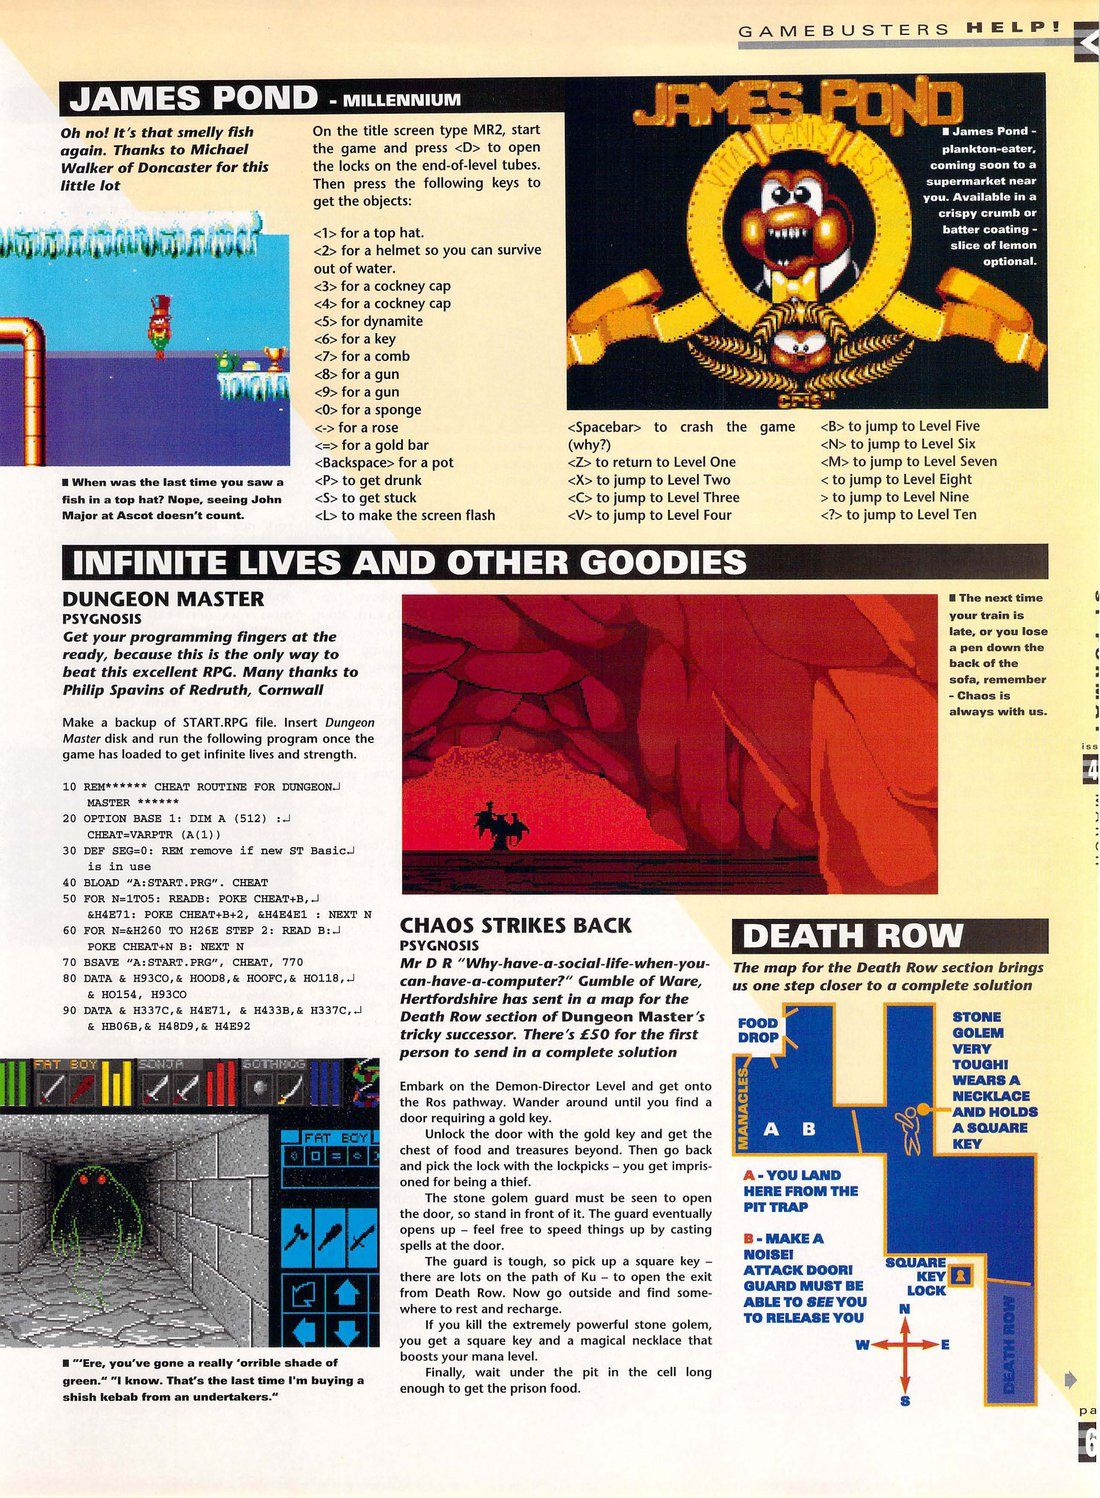 Dungeon Master And Chaos Strikes Back Hints published in British magazine 'ST Format', Issue #44 March 1993, Page 69